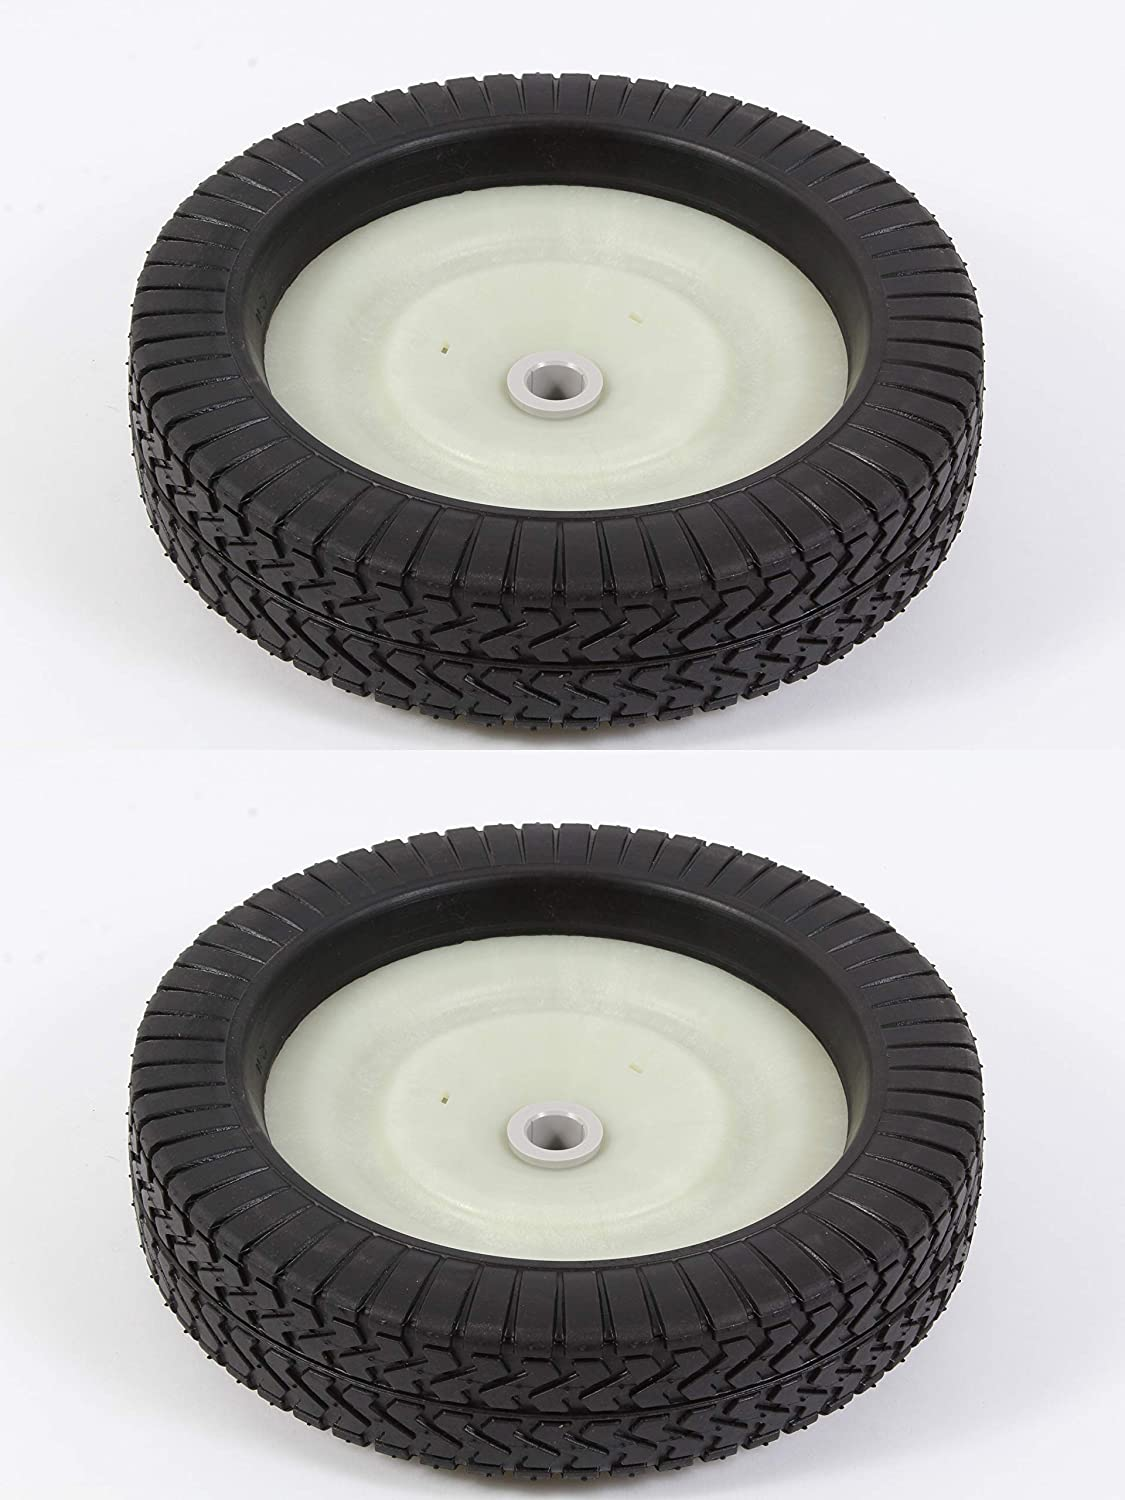 Agri-Fab 2 Pack Genuine 44985 Wheel & Tire ASM Fits Lawn Sweeper Craftsman